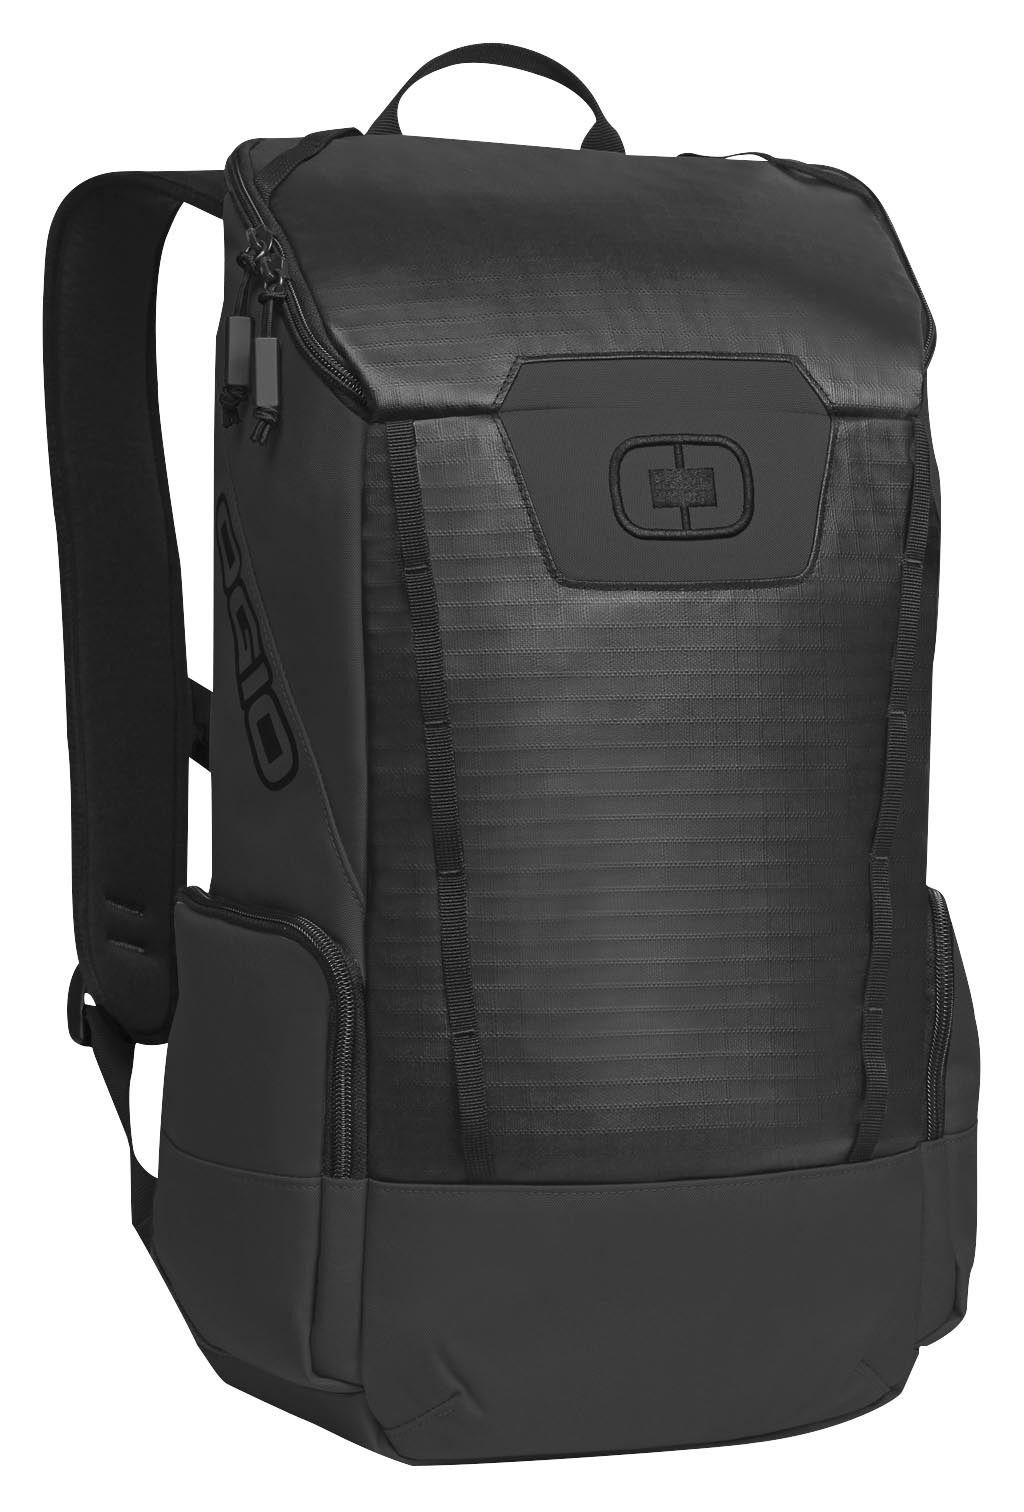 OGIO Clutch Backpack - Cycle Gear